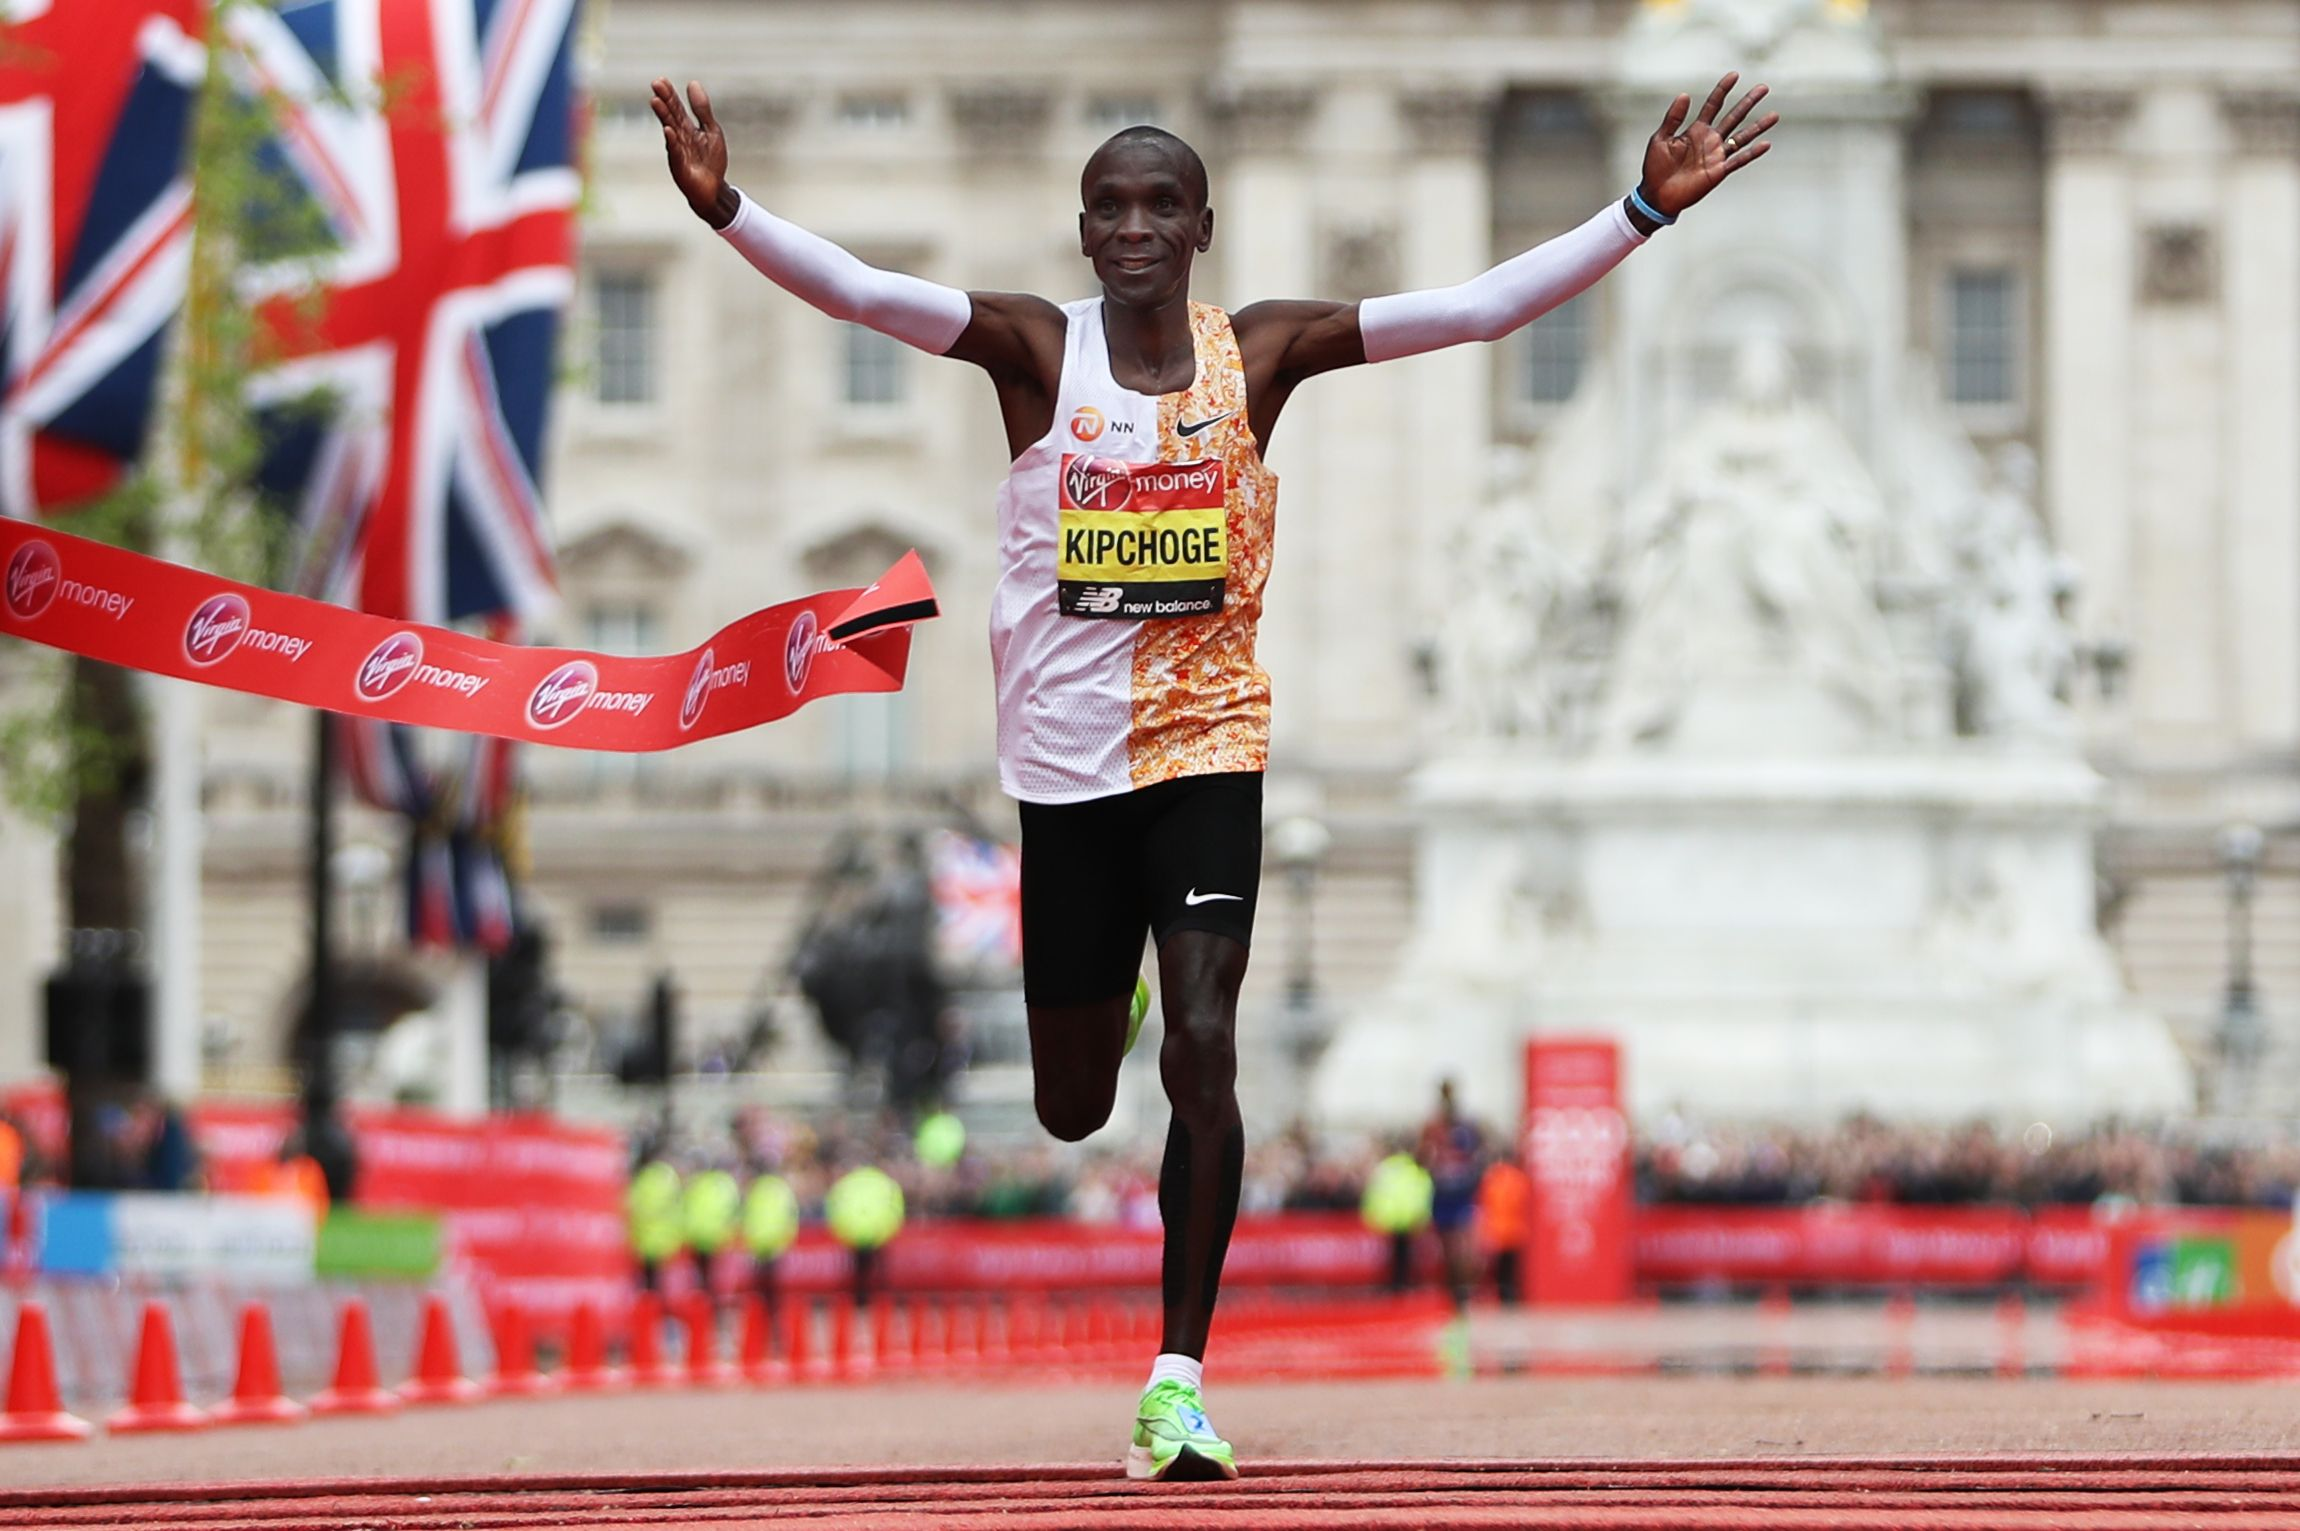 Why Eliud Kipchoge's Remarkable 1:59 Marathon Won't Be an Official World Record